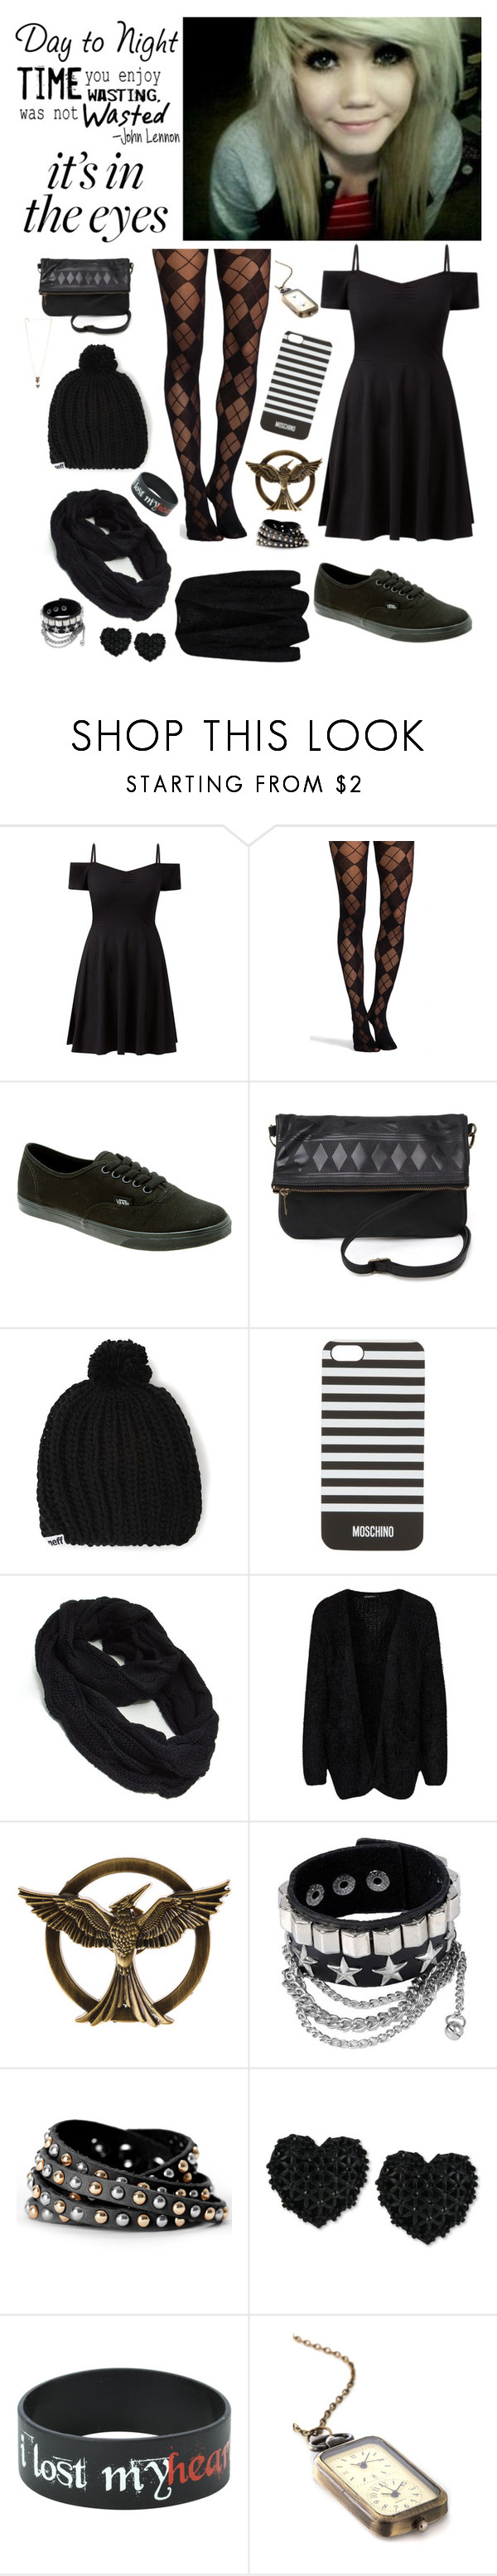 """""Bells found her mate?!?!"" - Tilly"" by nationalnerd ❤ liked on Polyvore featuring Pretty Polly, Vans, With Love From CA, Neff, Moschino, Rut&Circle and Betsey Johnson"